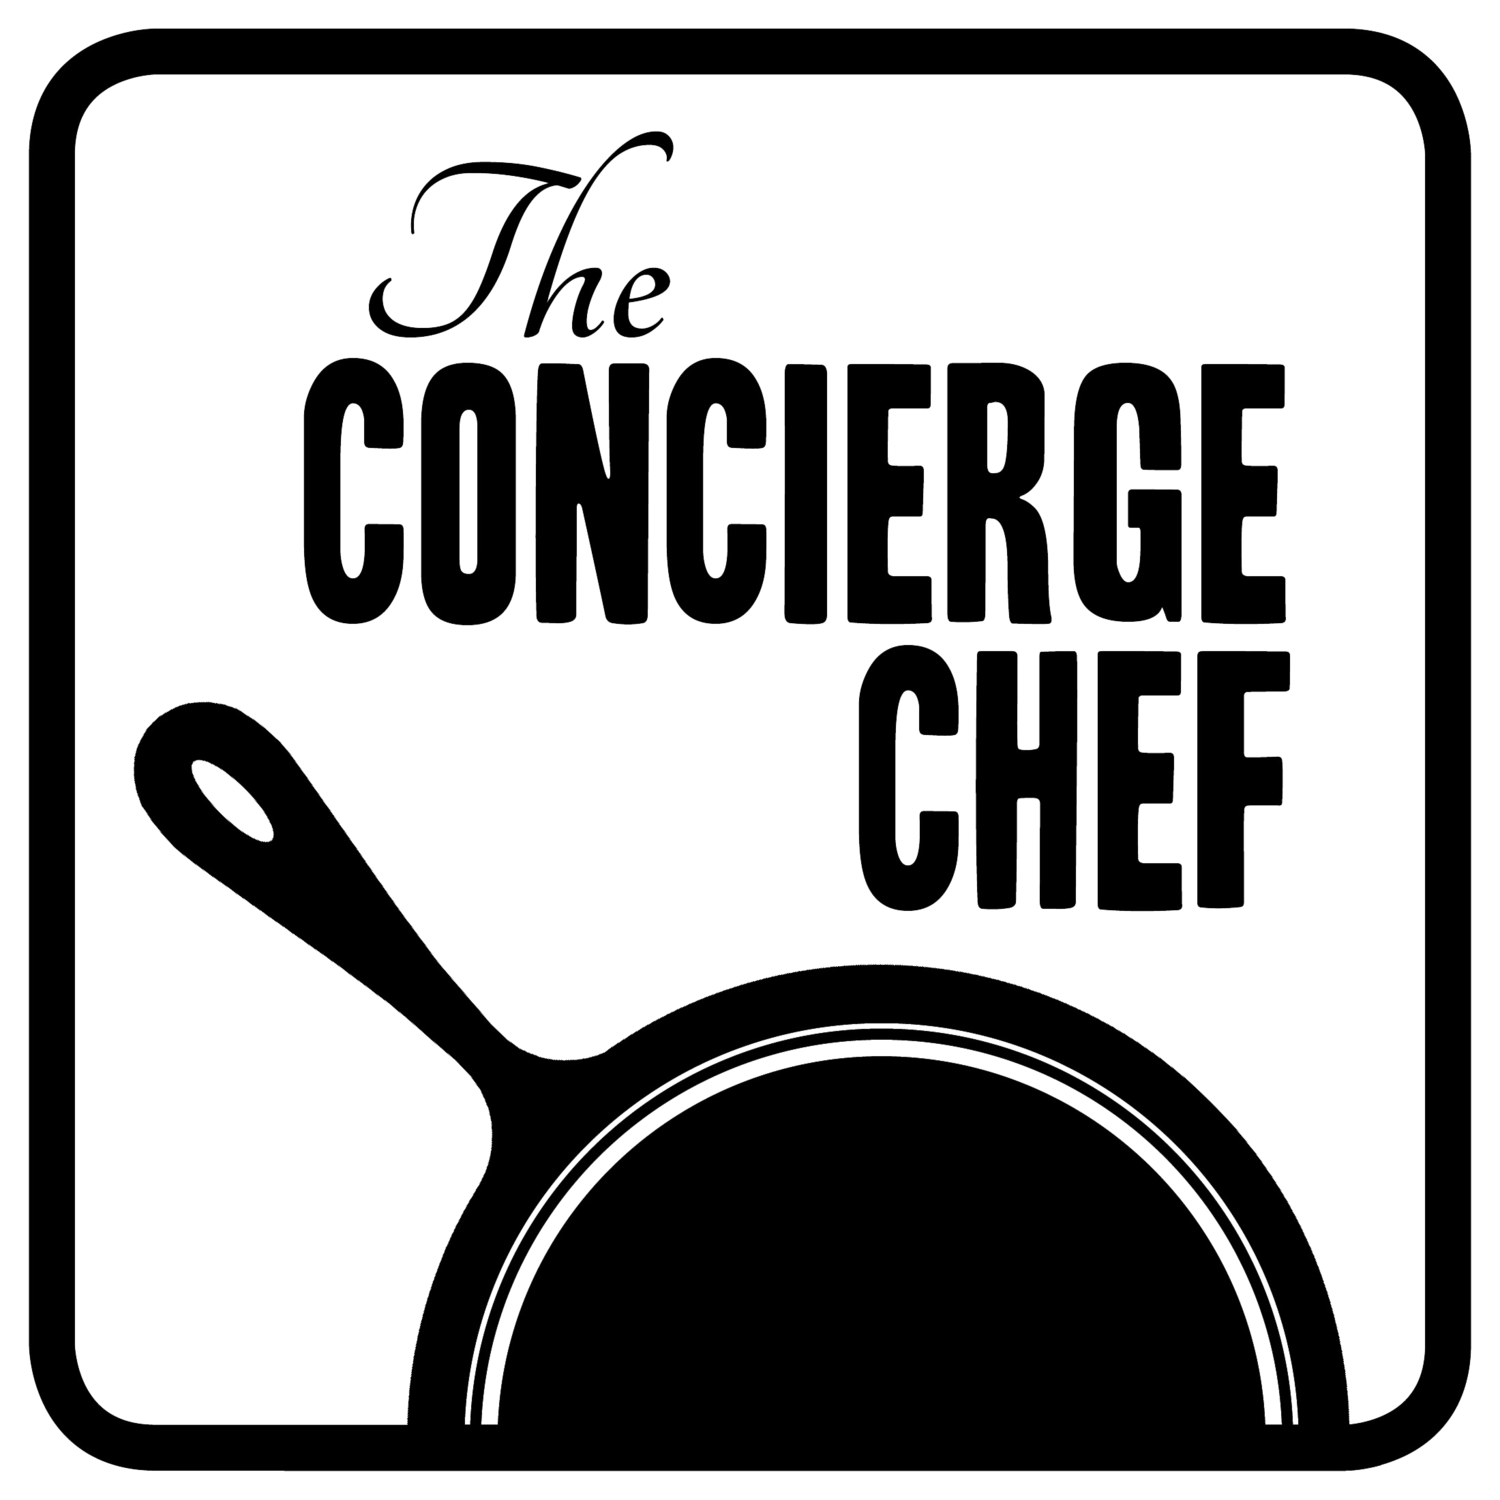 The Concierge Chef